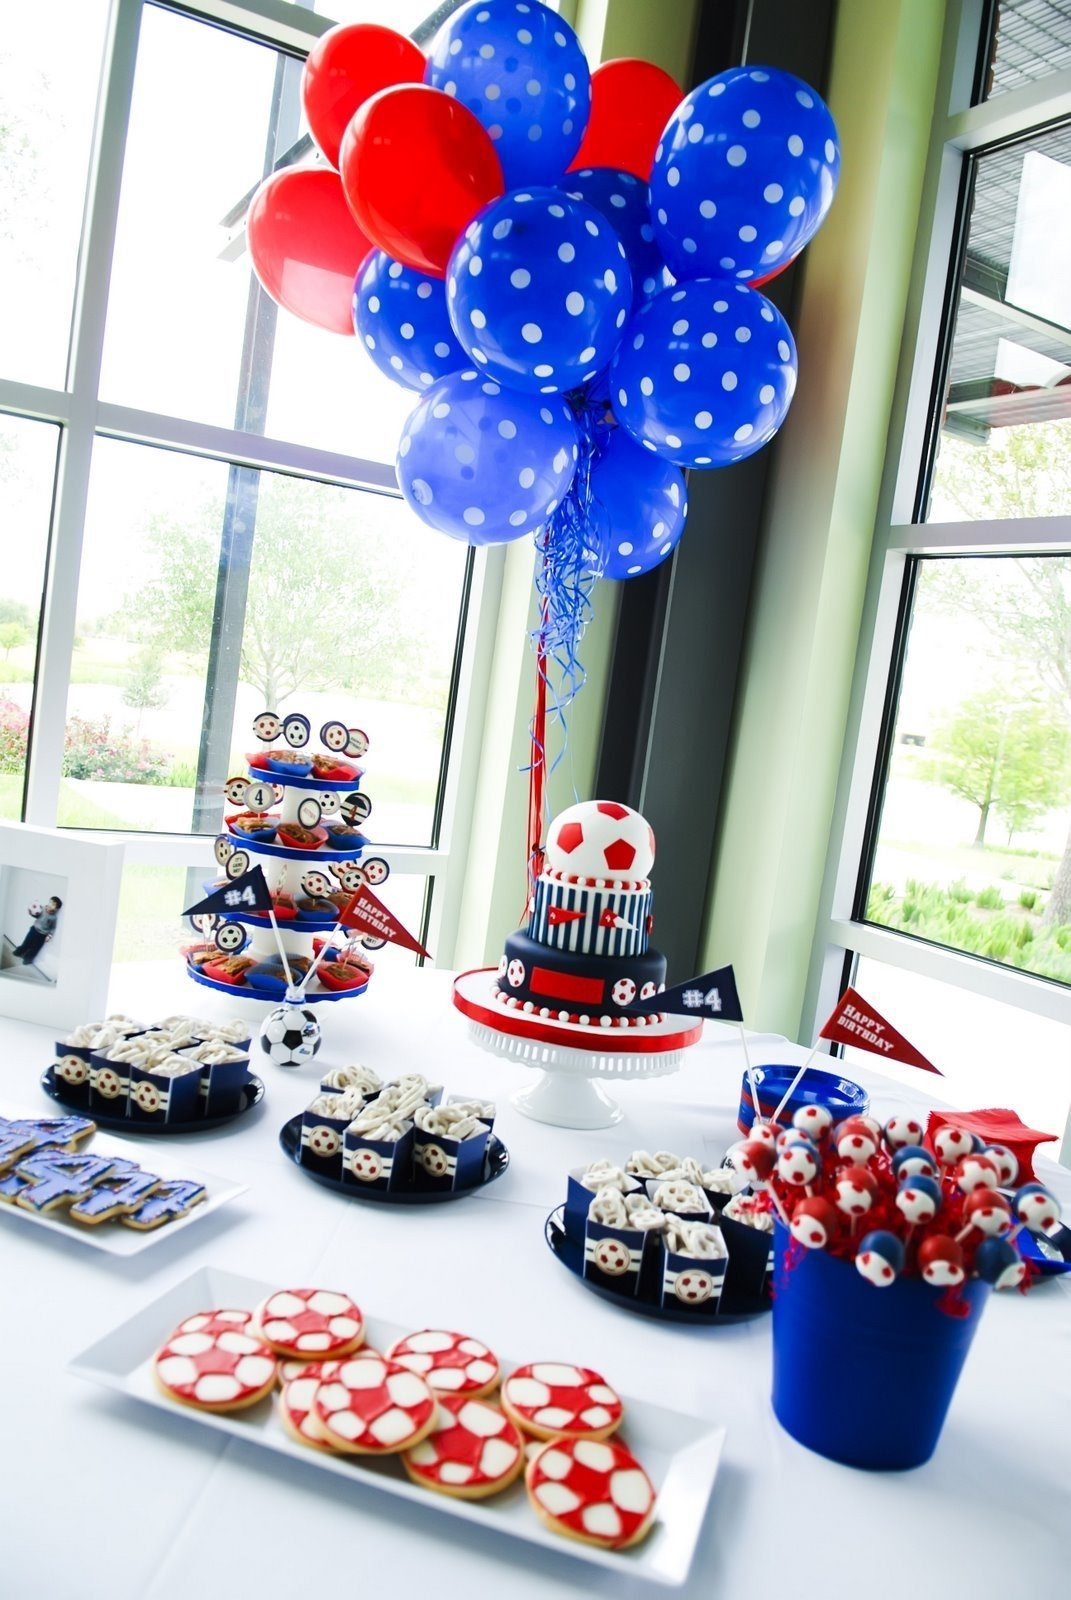 10 Perfect Birthday Party Ideas For Boys Age 10 50 awesome boys birthday party ideas i heart naptime 17 2021